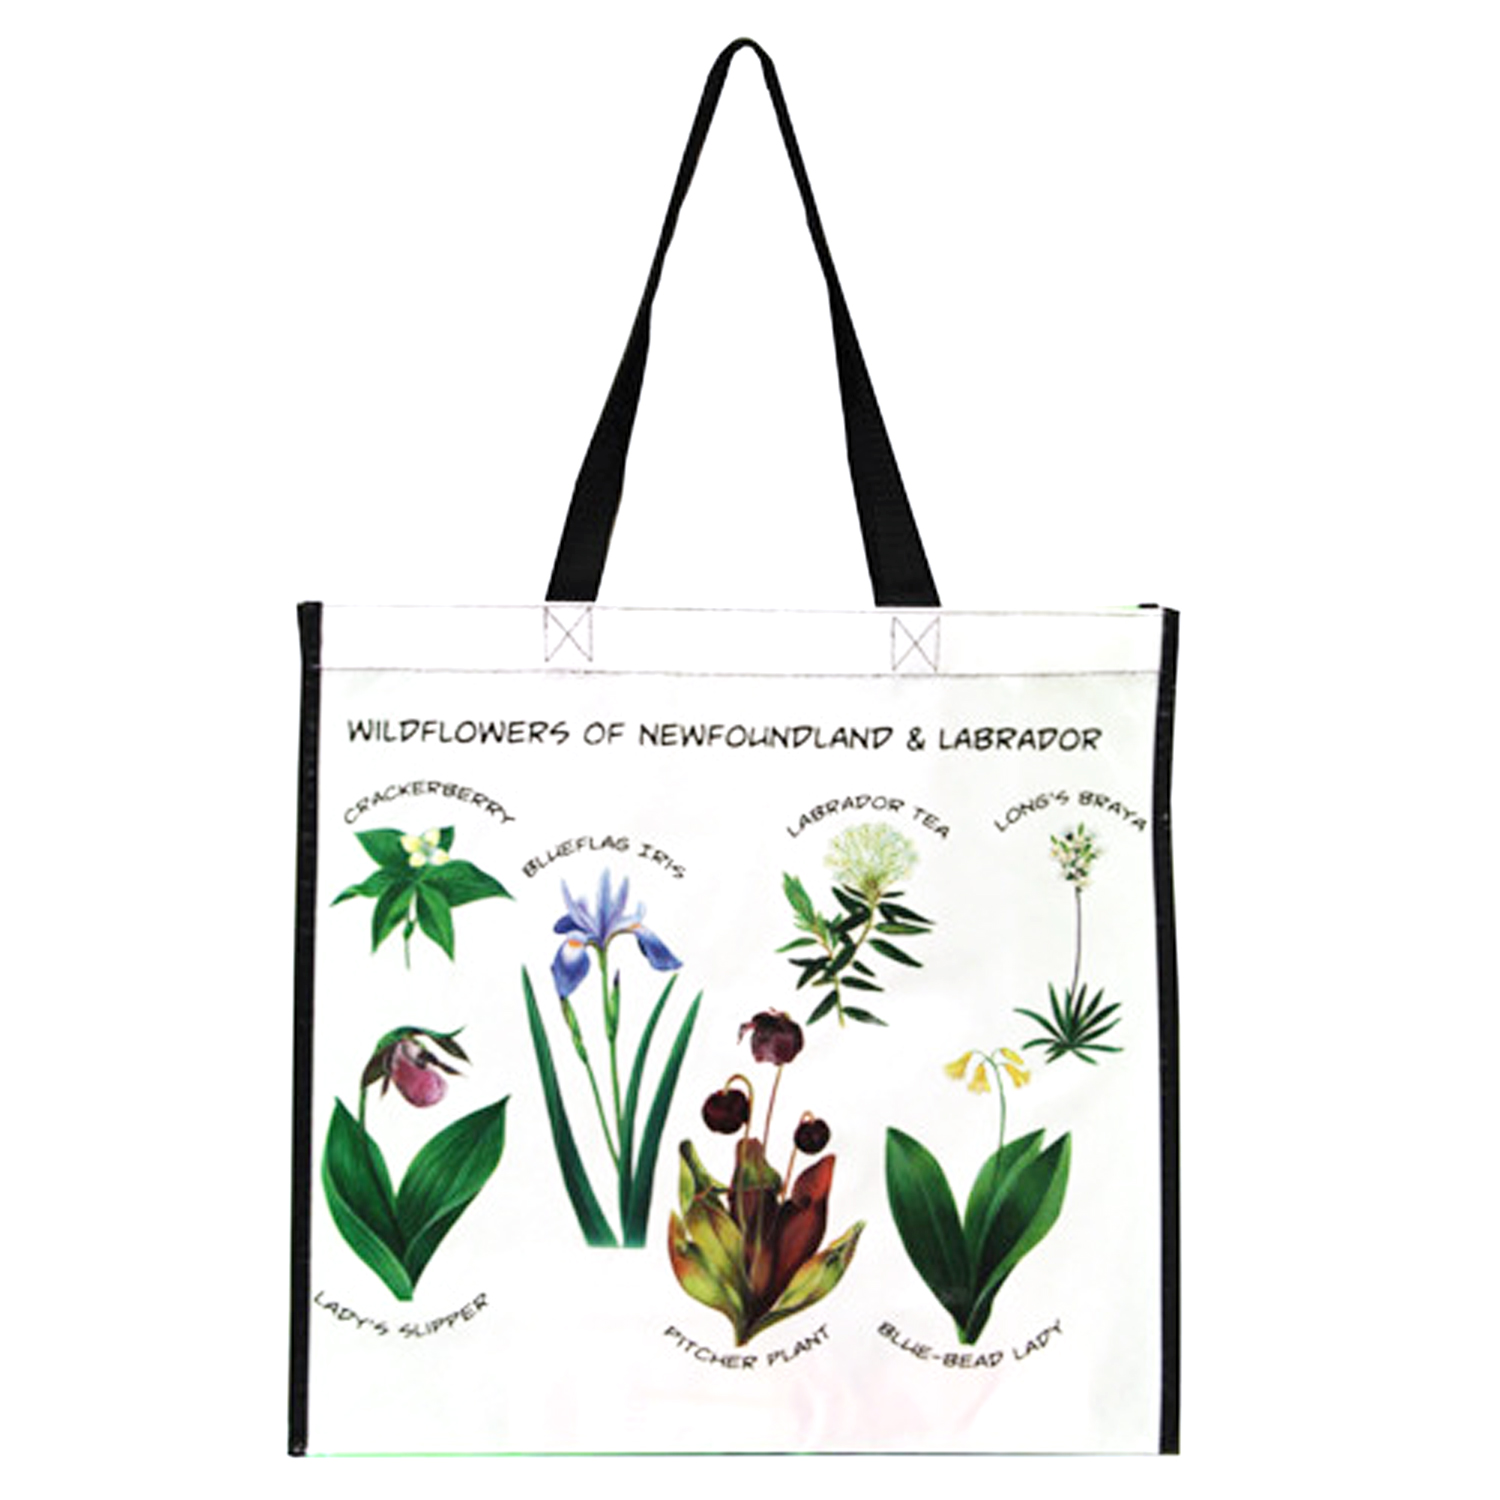 wildflower-tote-bag_web.jpg